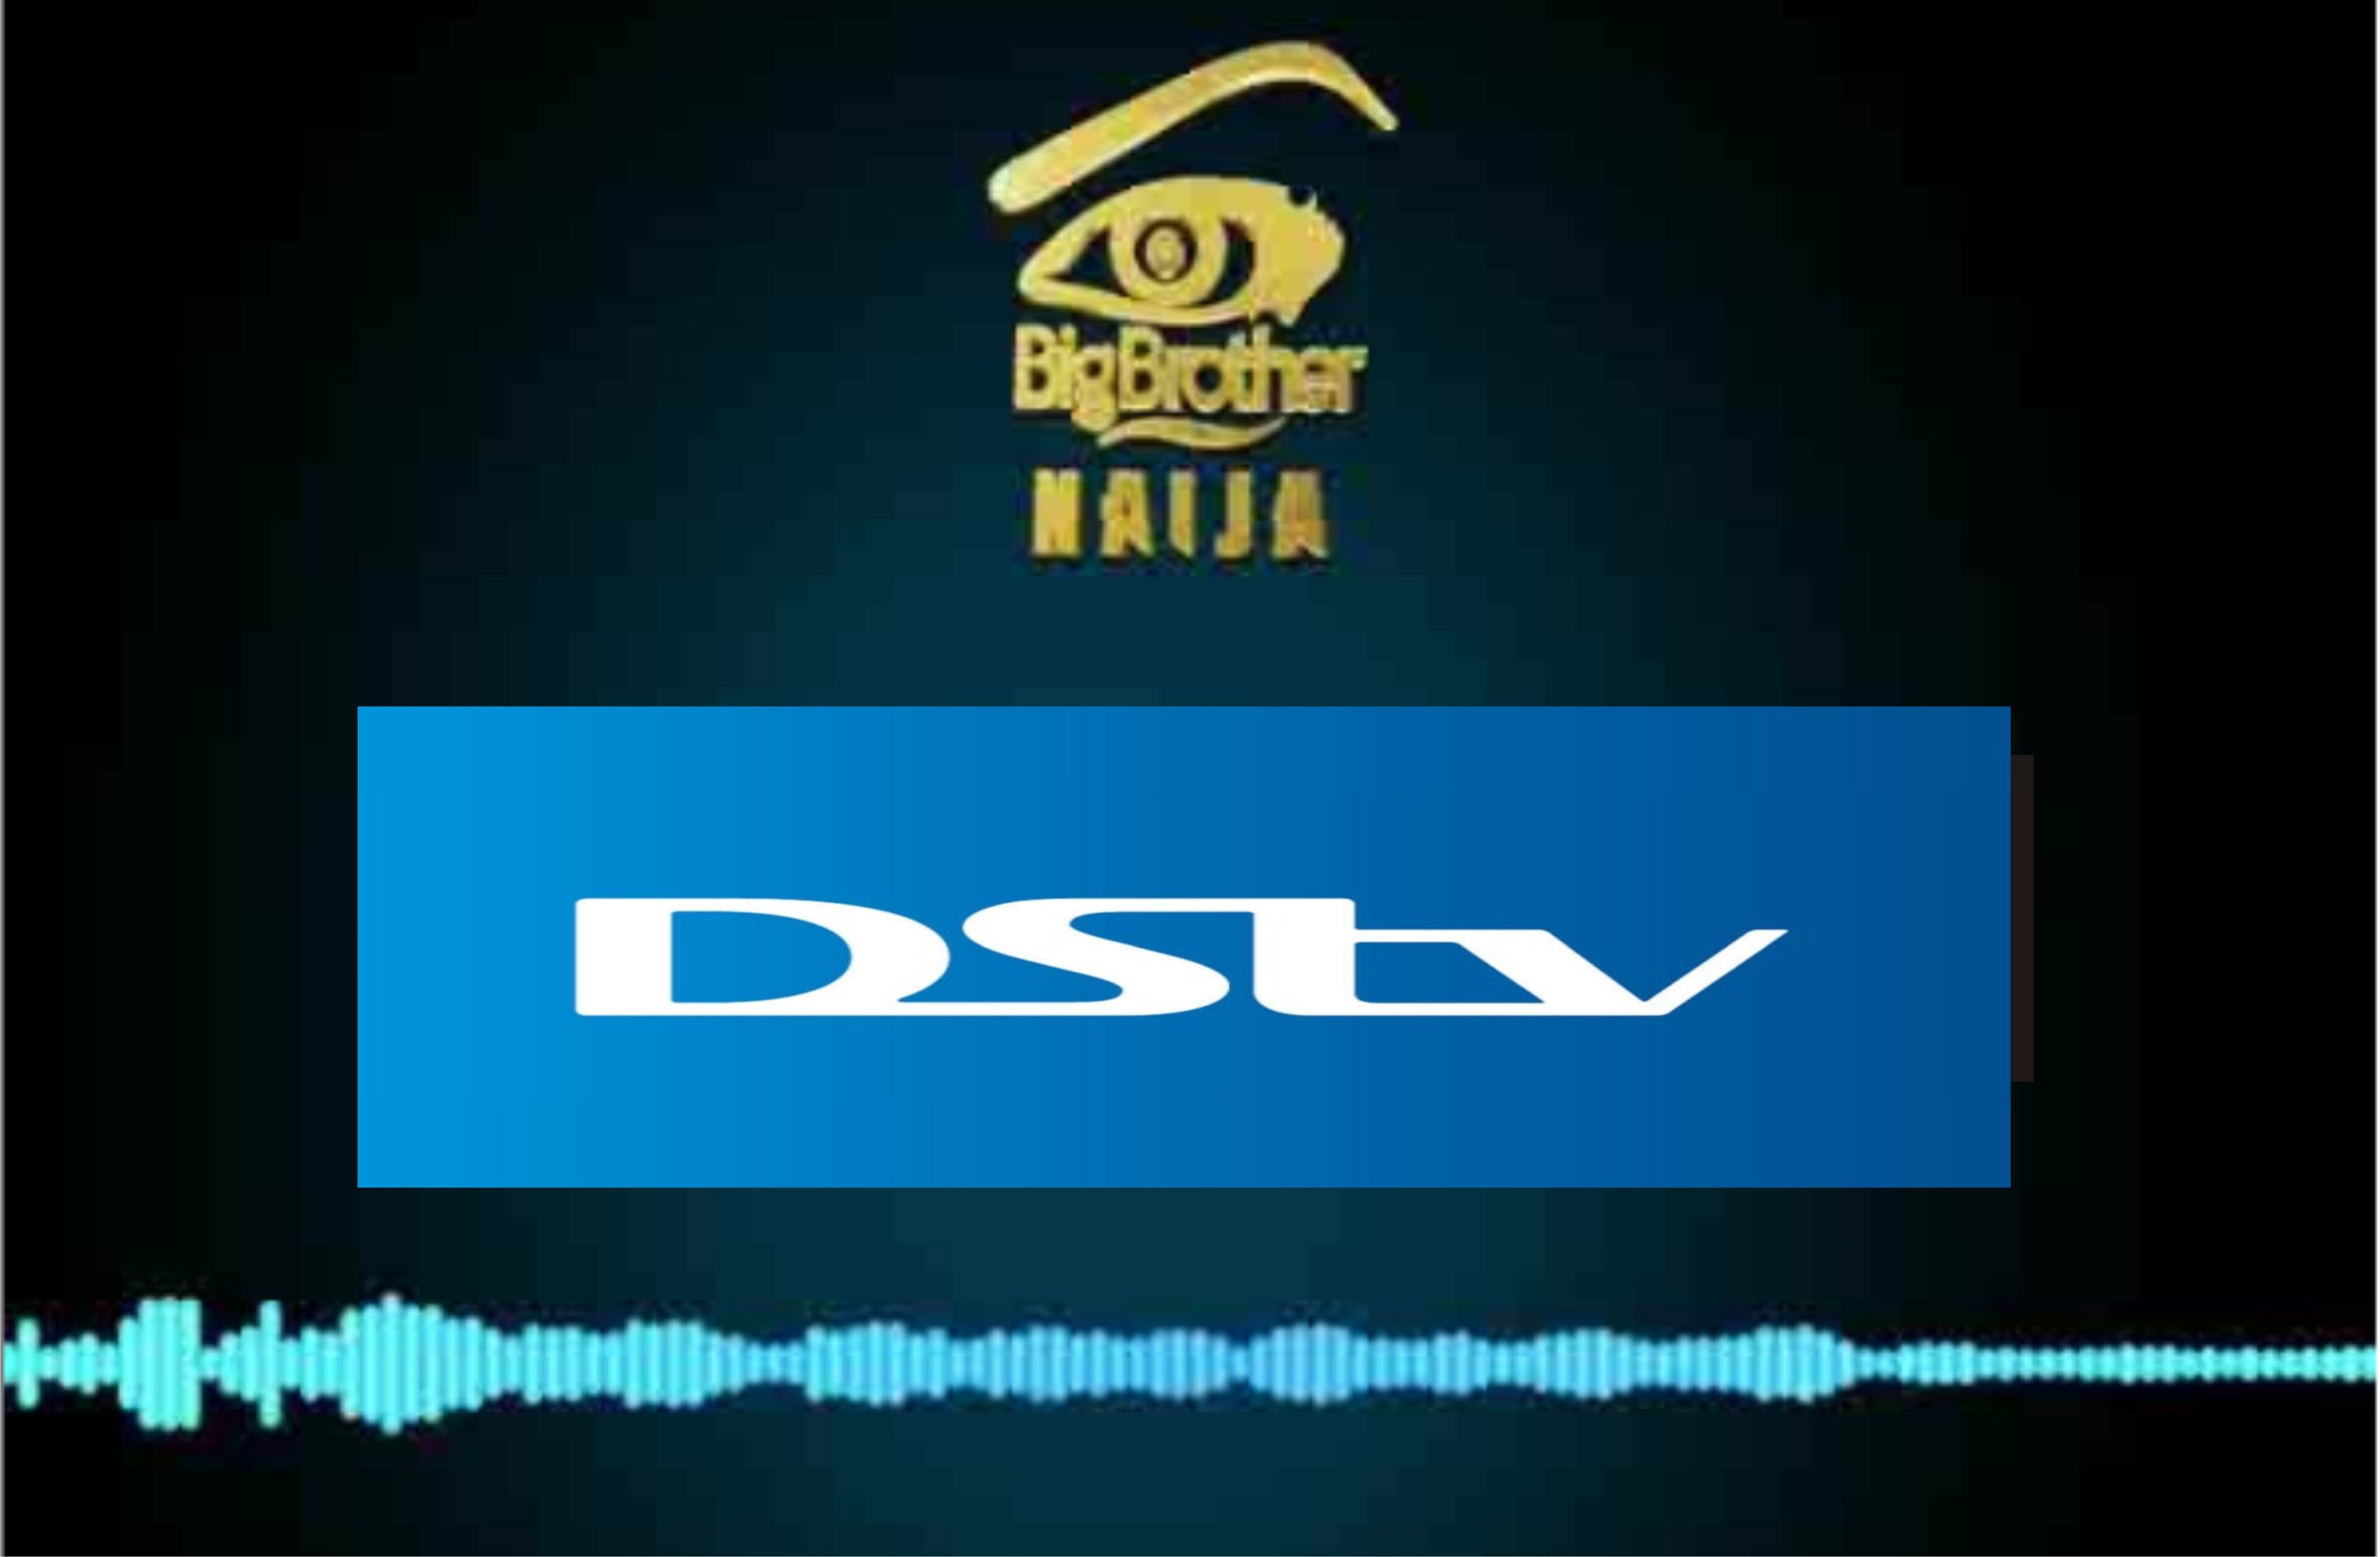 How to Download DStv Now App for Big Brother Naija 2019 on Android and iOS